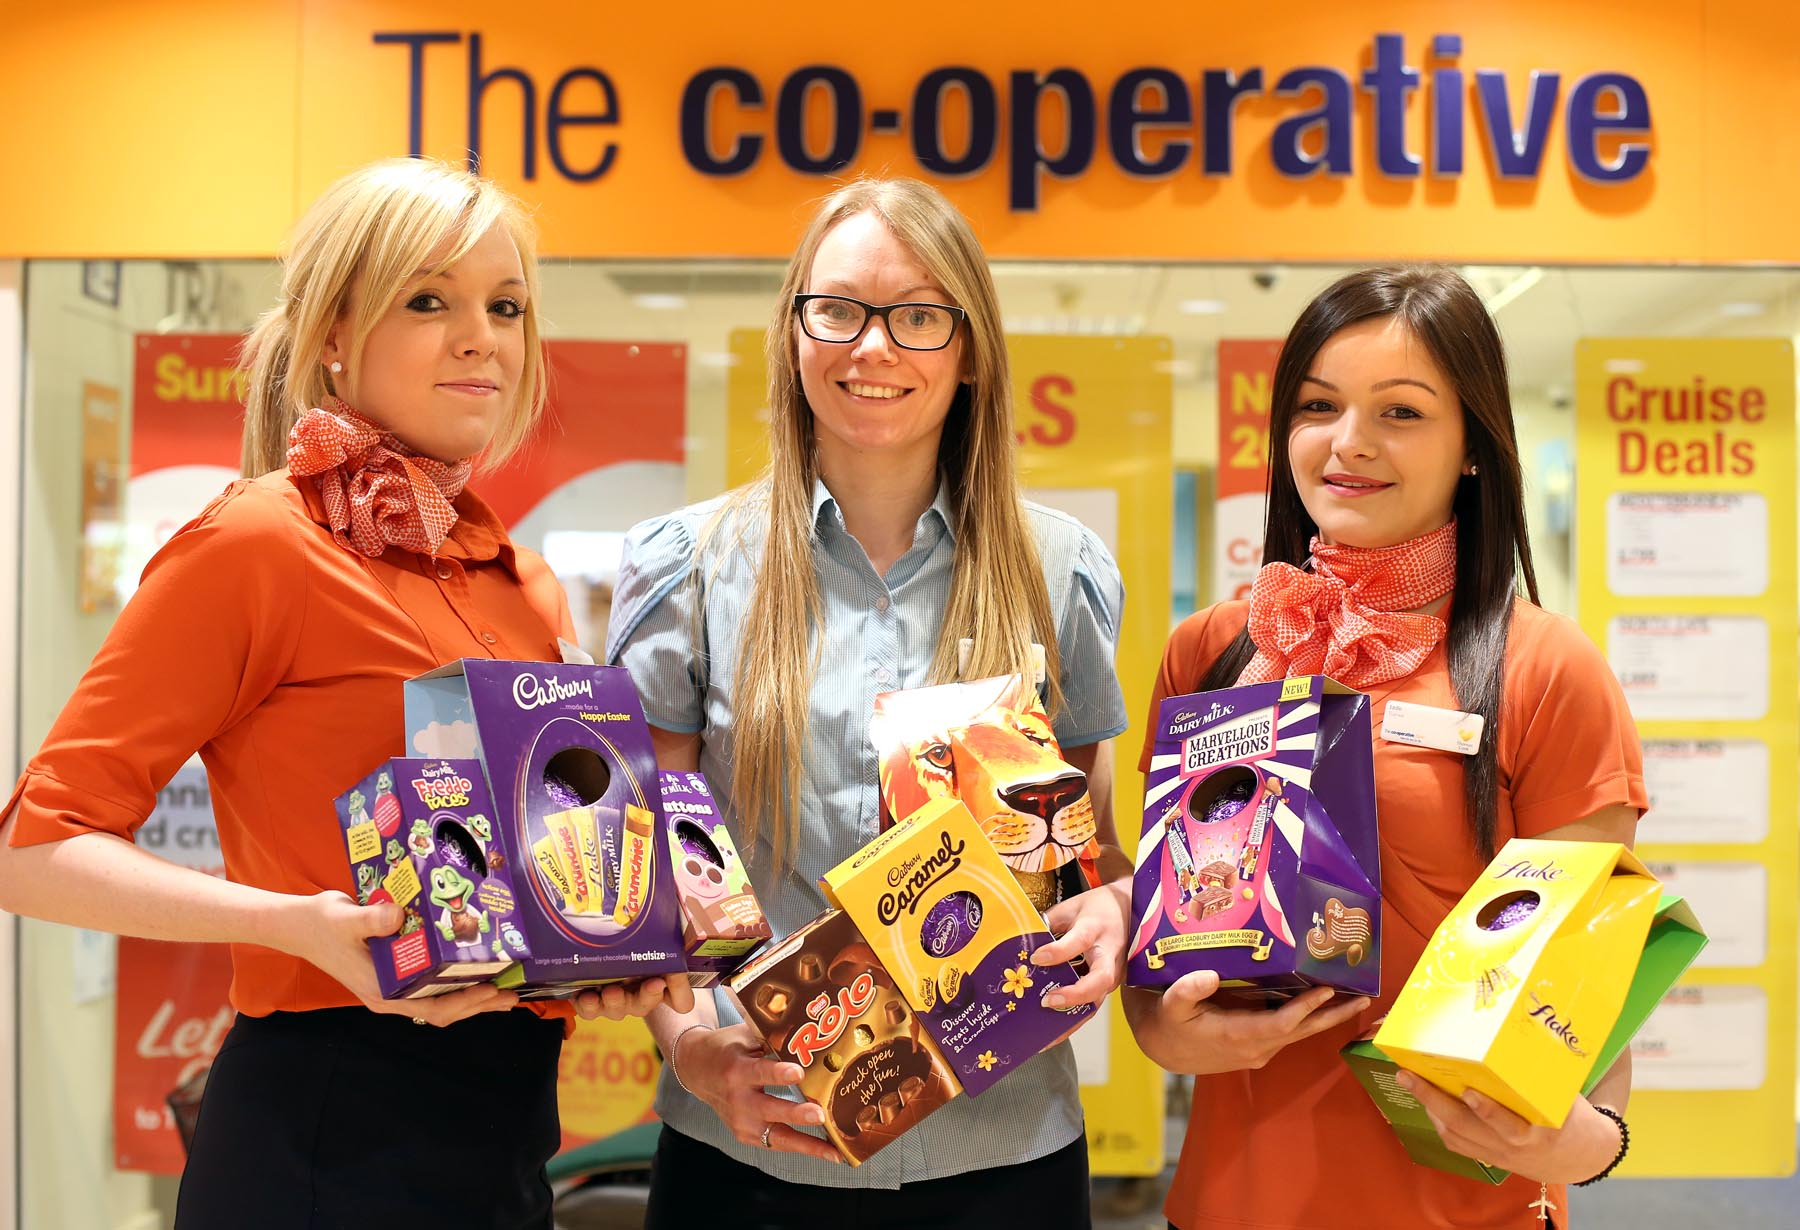 PUTTING A SMILE ON FACES: Co-operative Travel in Morrisons, in No